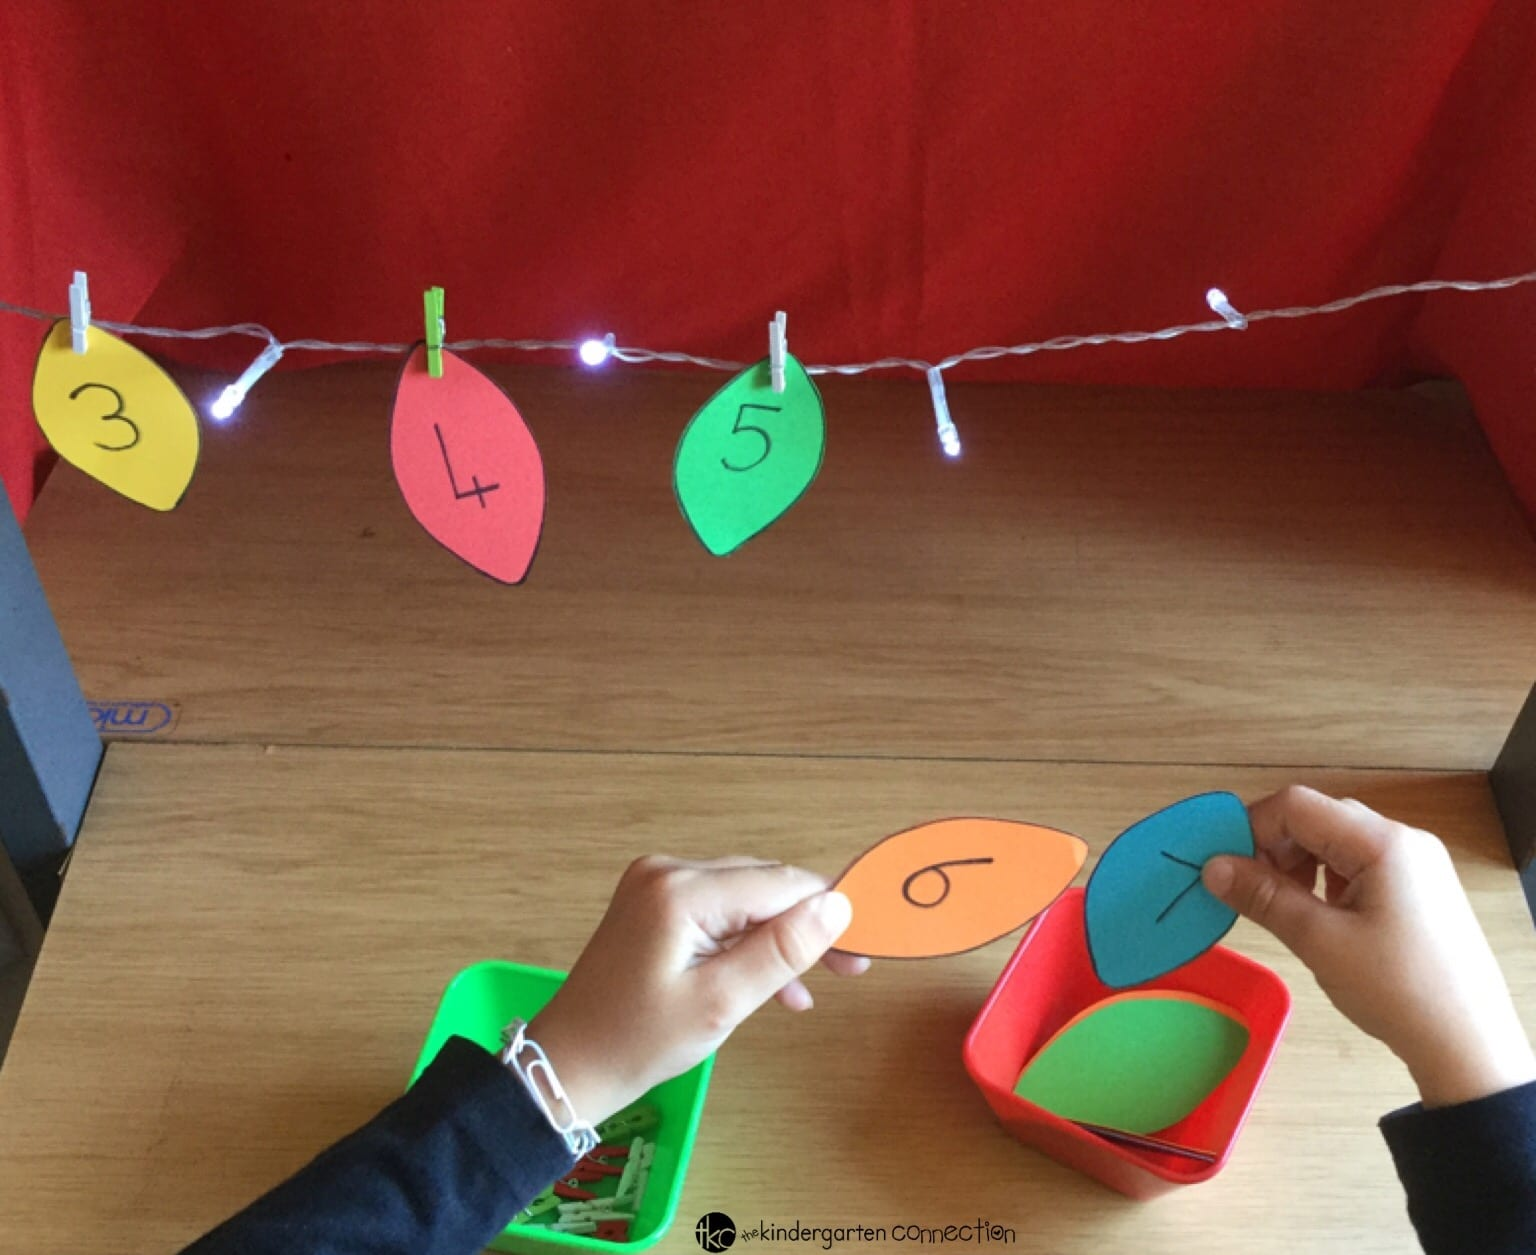 This Christmas counting on activity is so fun for Pre-K and Kindergarten kids to work on number identification, number order, and counting skills! It is the perfect addition to any math center!